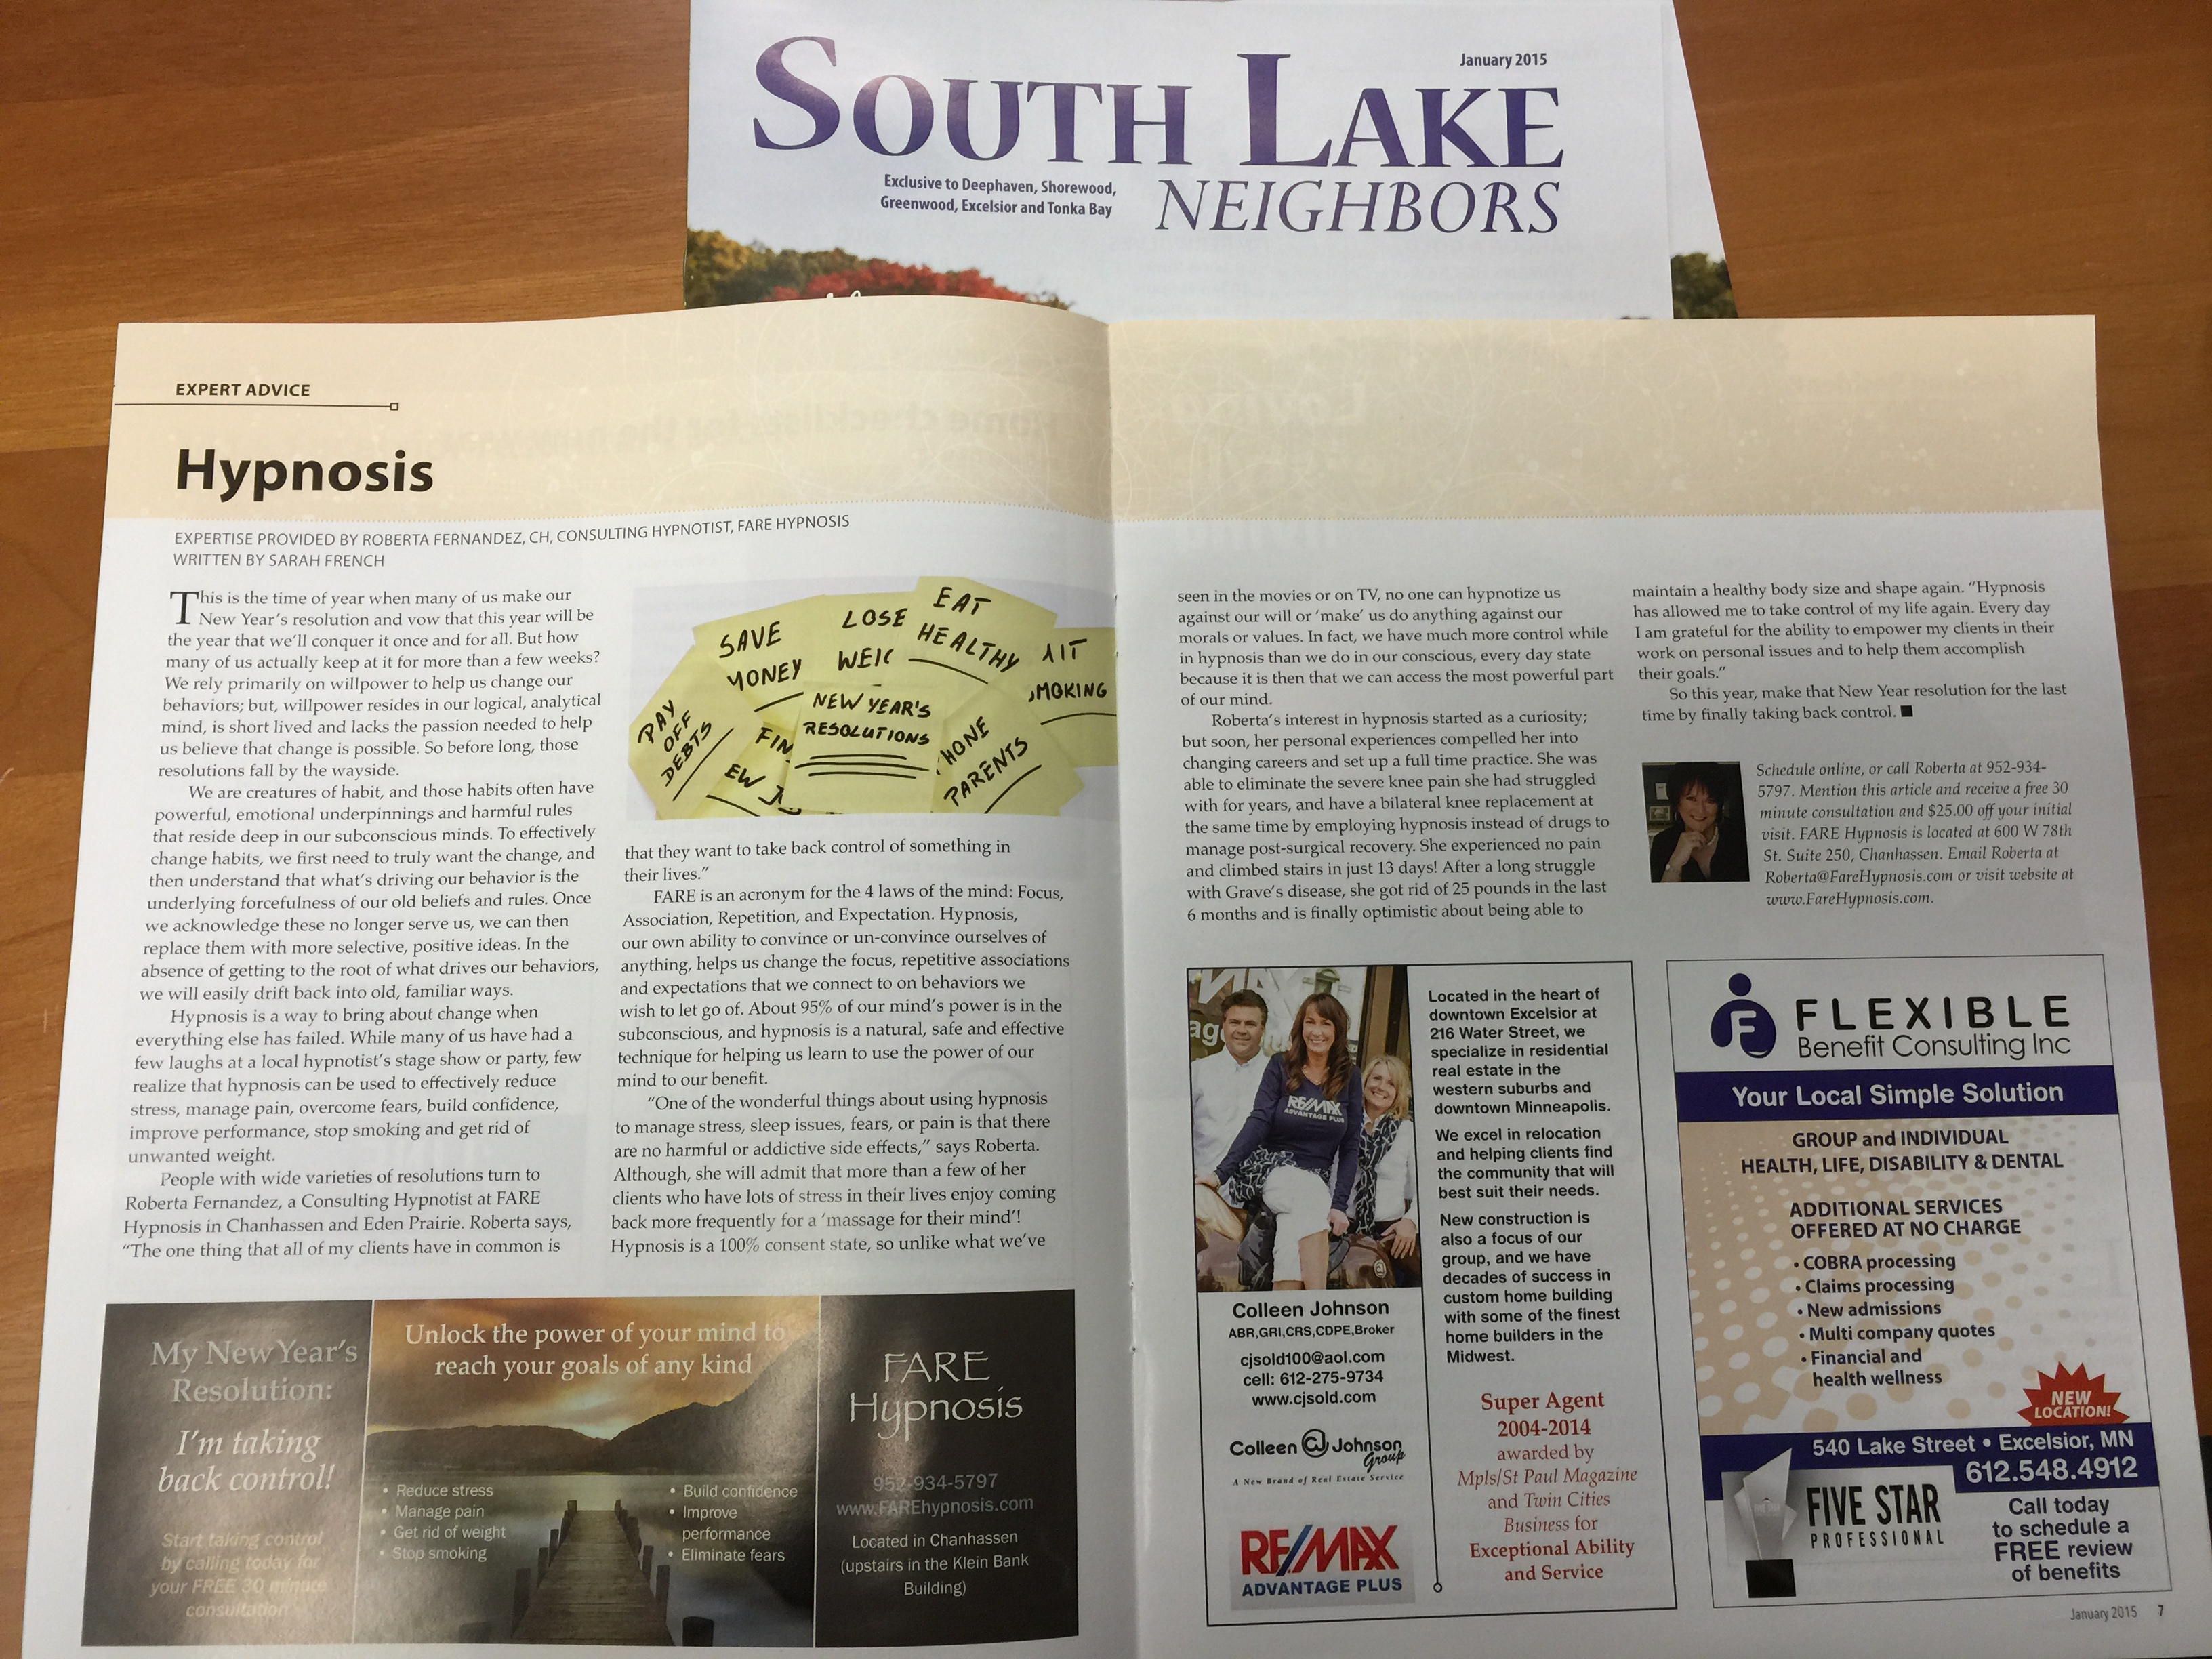 Southlake Magazine and FARE Hypnosis